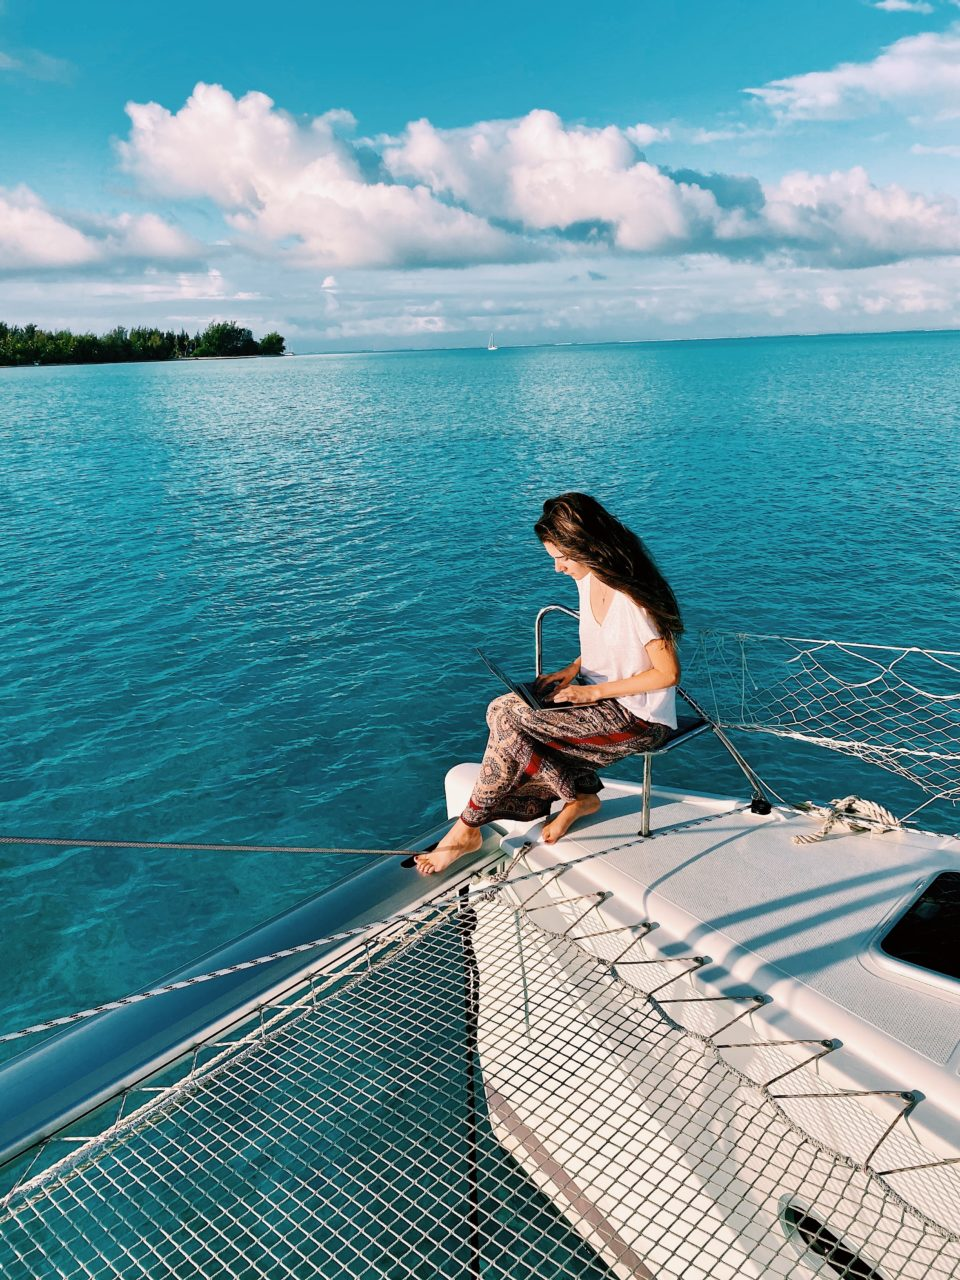 Dylan, the travel writer, writing about her experiences in the island of Bora Bora